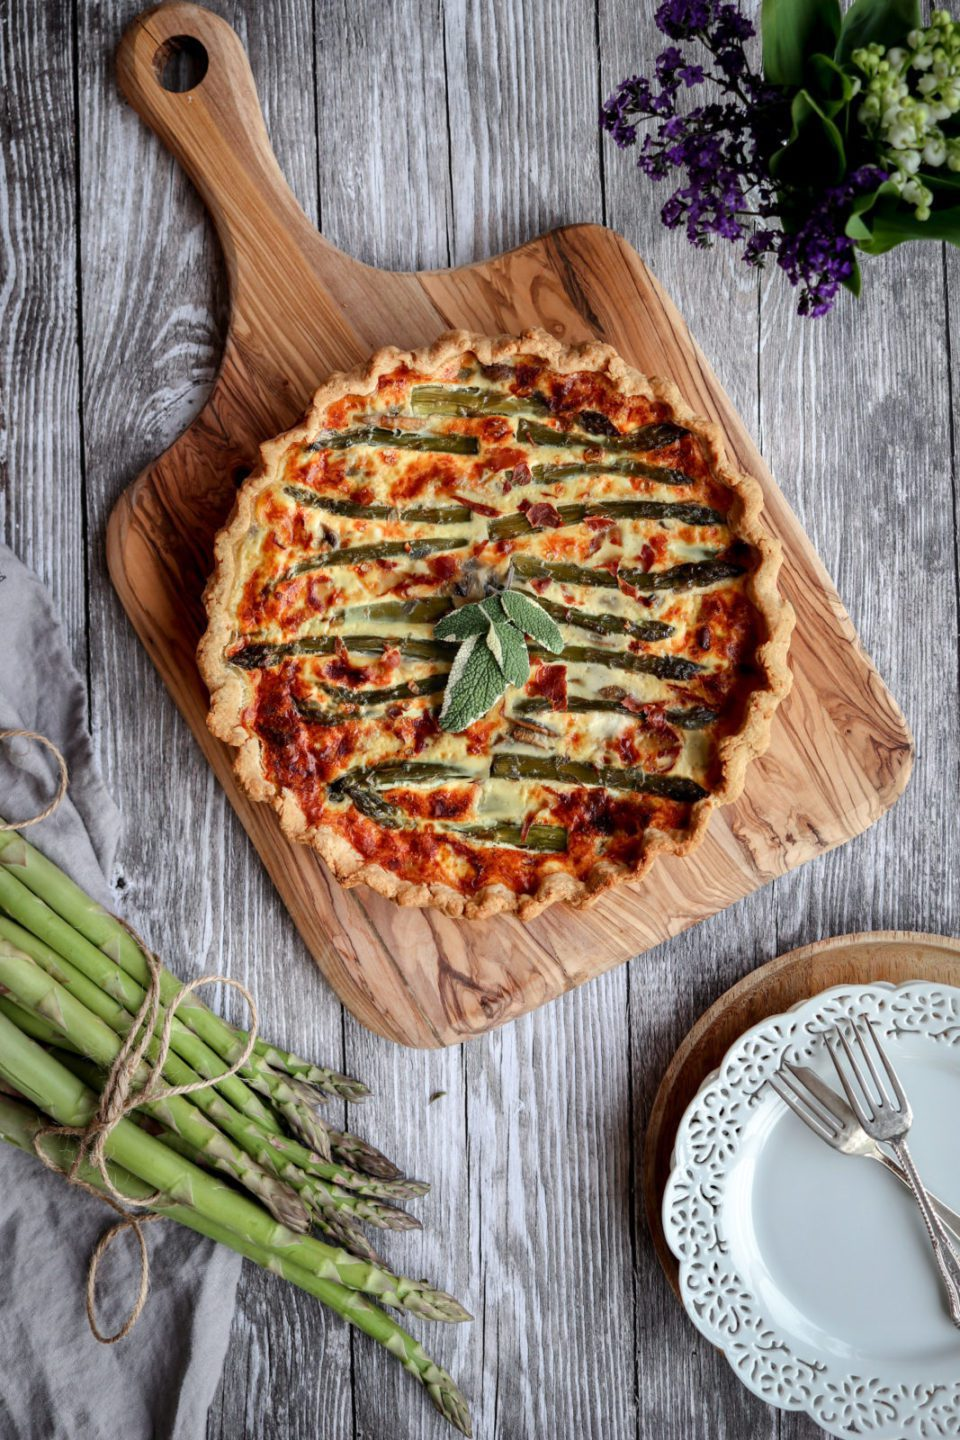 Quiche filled with asparagus, mushrooms, mozzarella and parmesan cheese